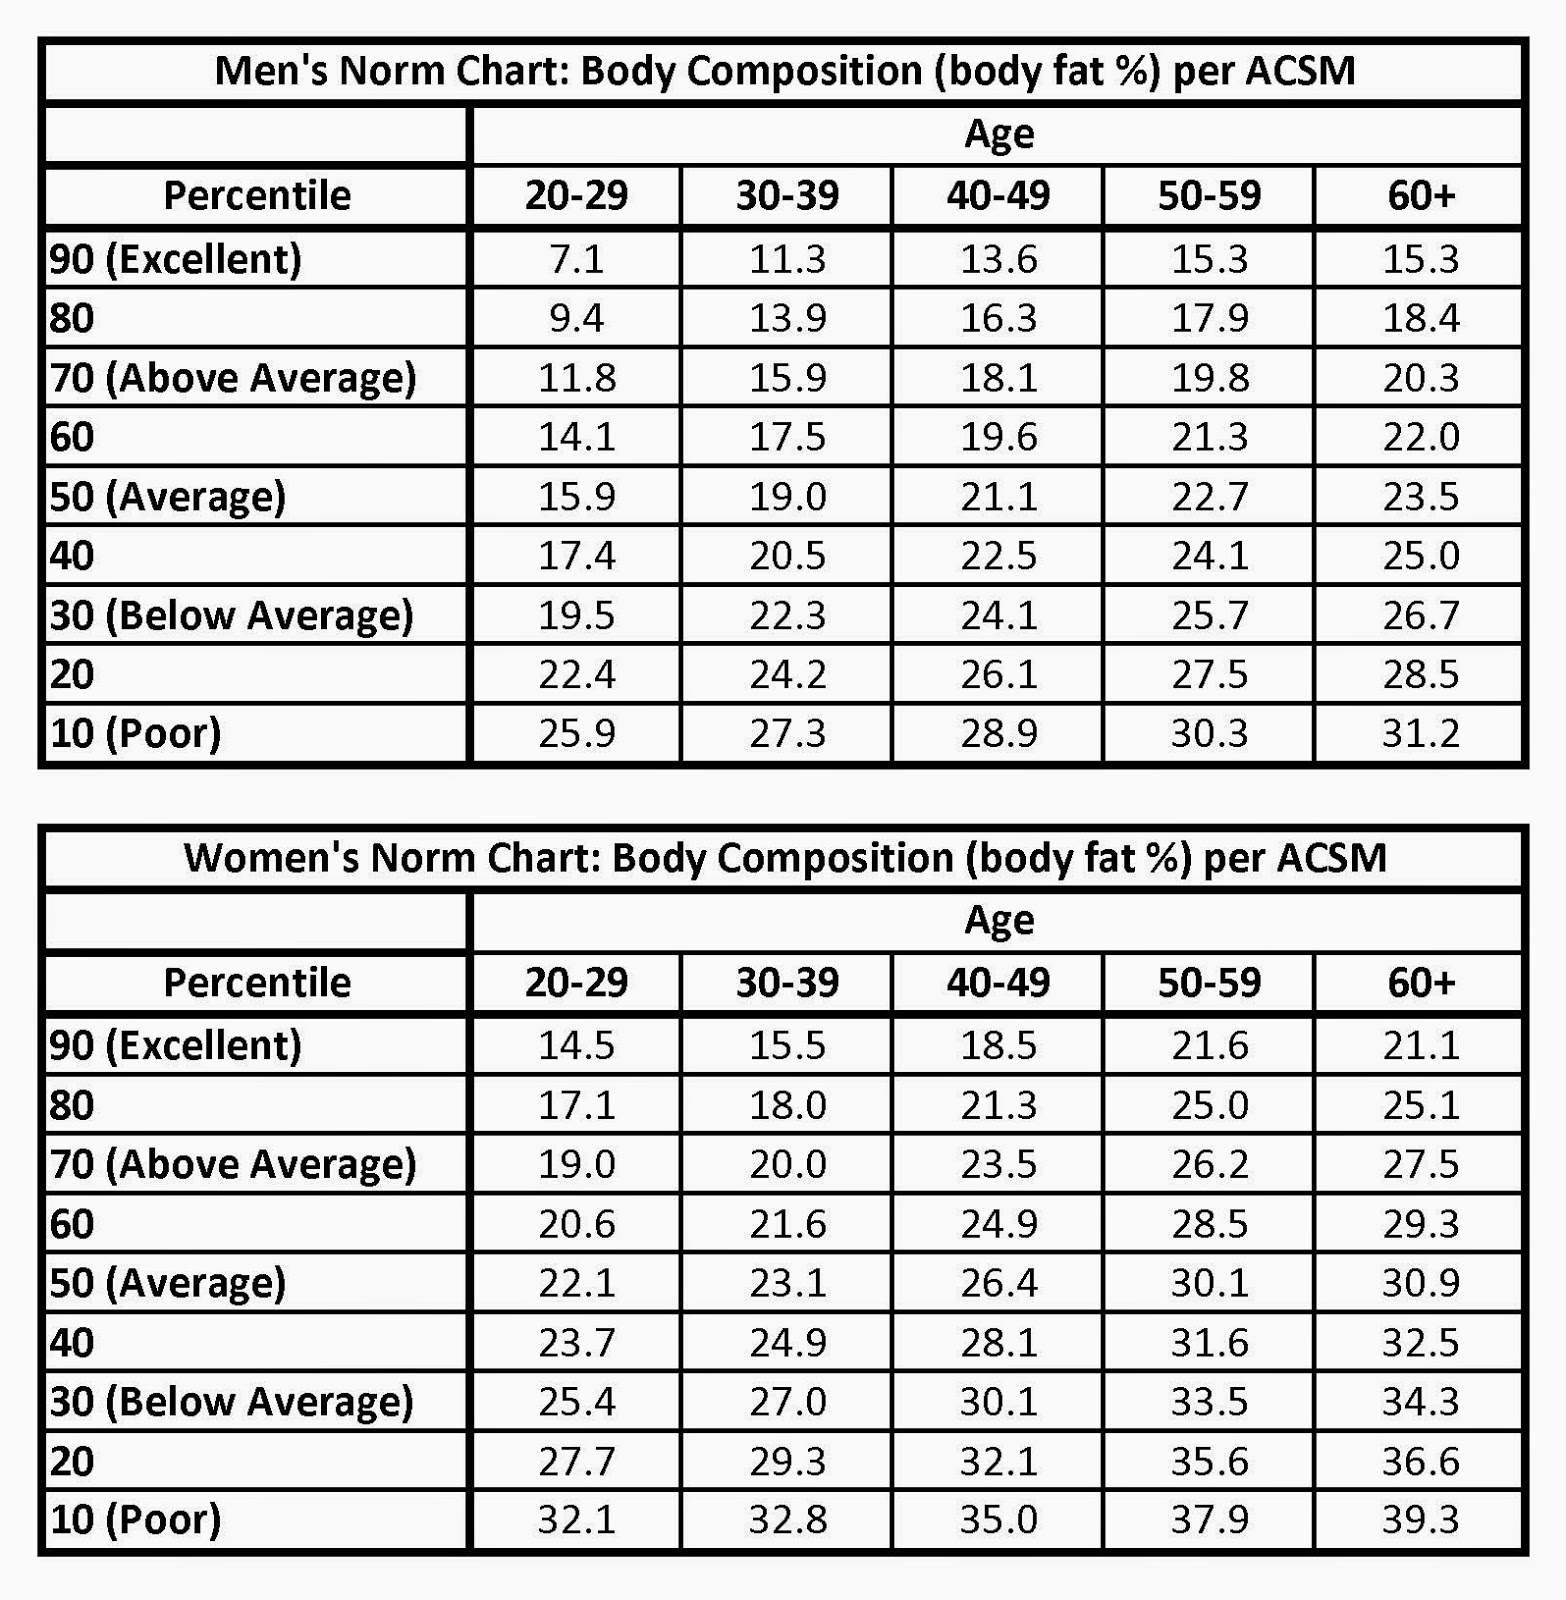 body composition chart socialmediaworksco – Body Fat Percentage Chart Template